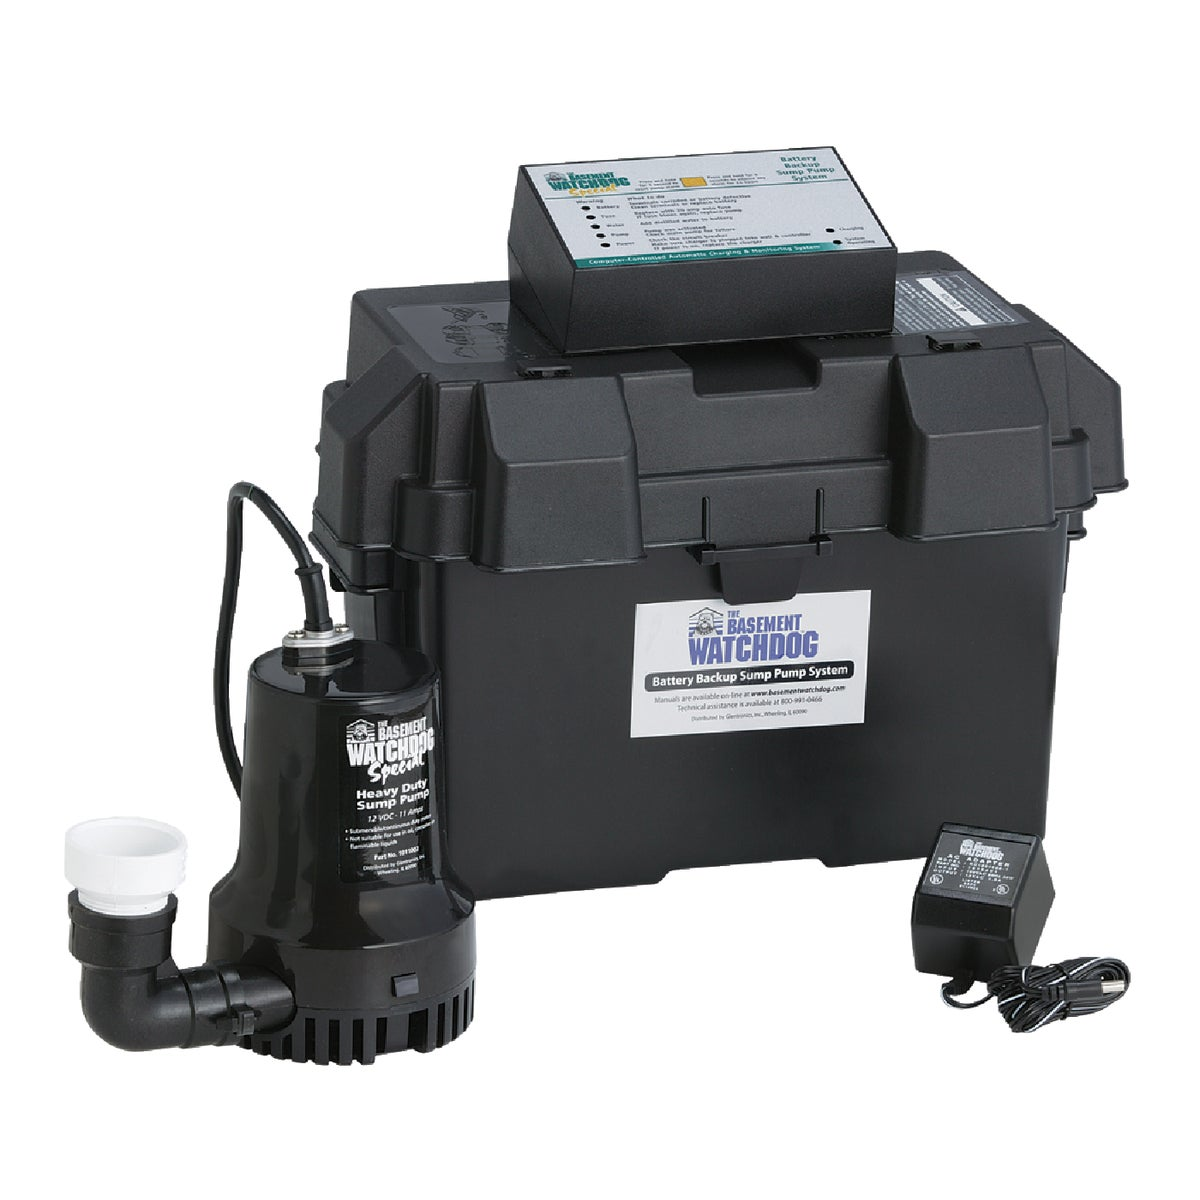 BATTERY BACKUP PUMP - BWSP by Glentronics Inc